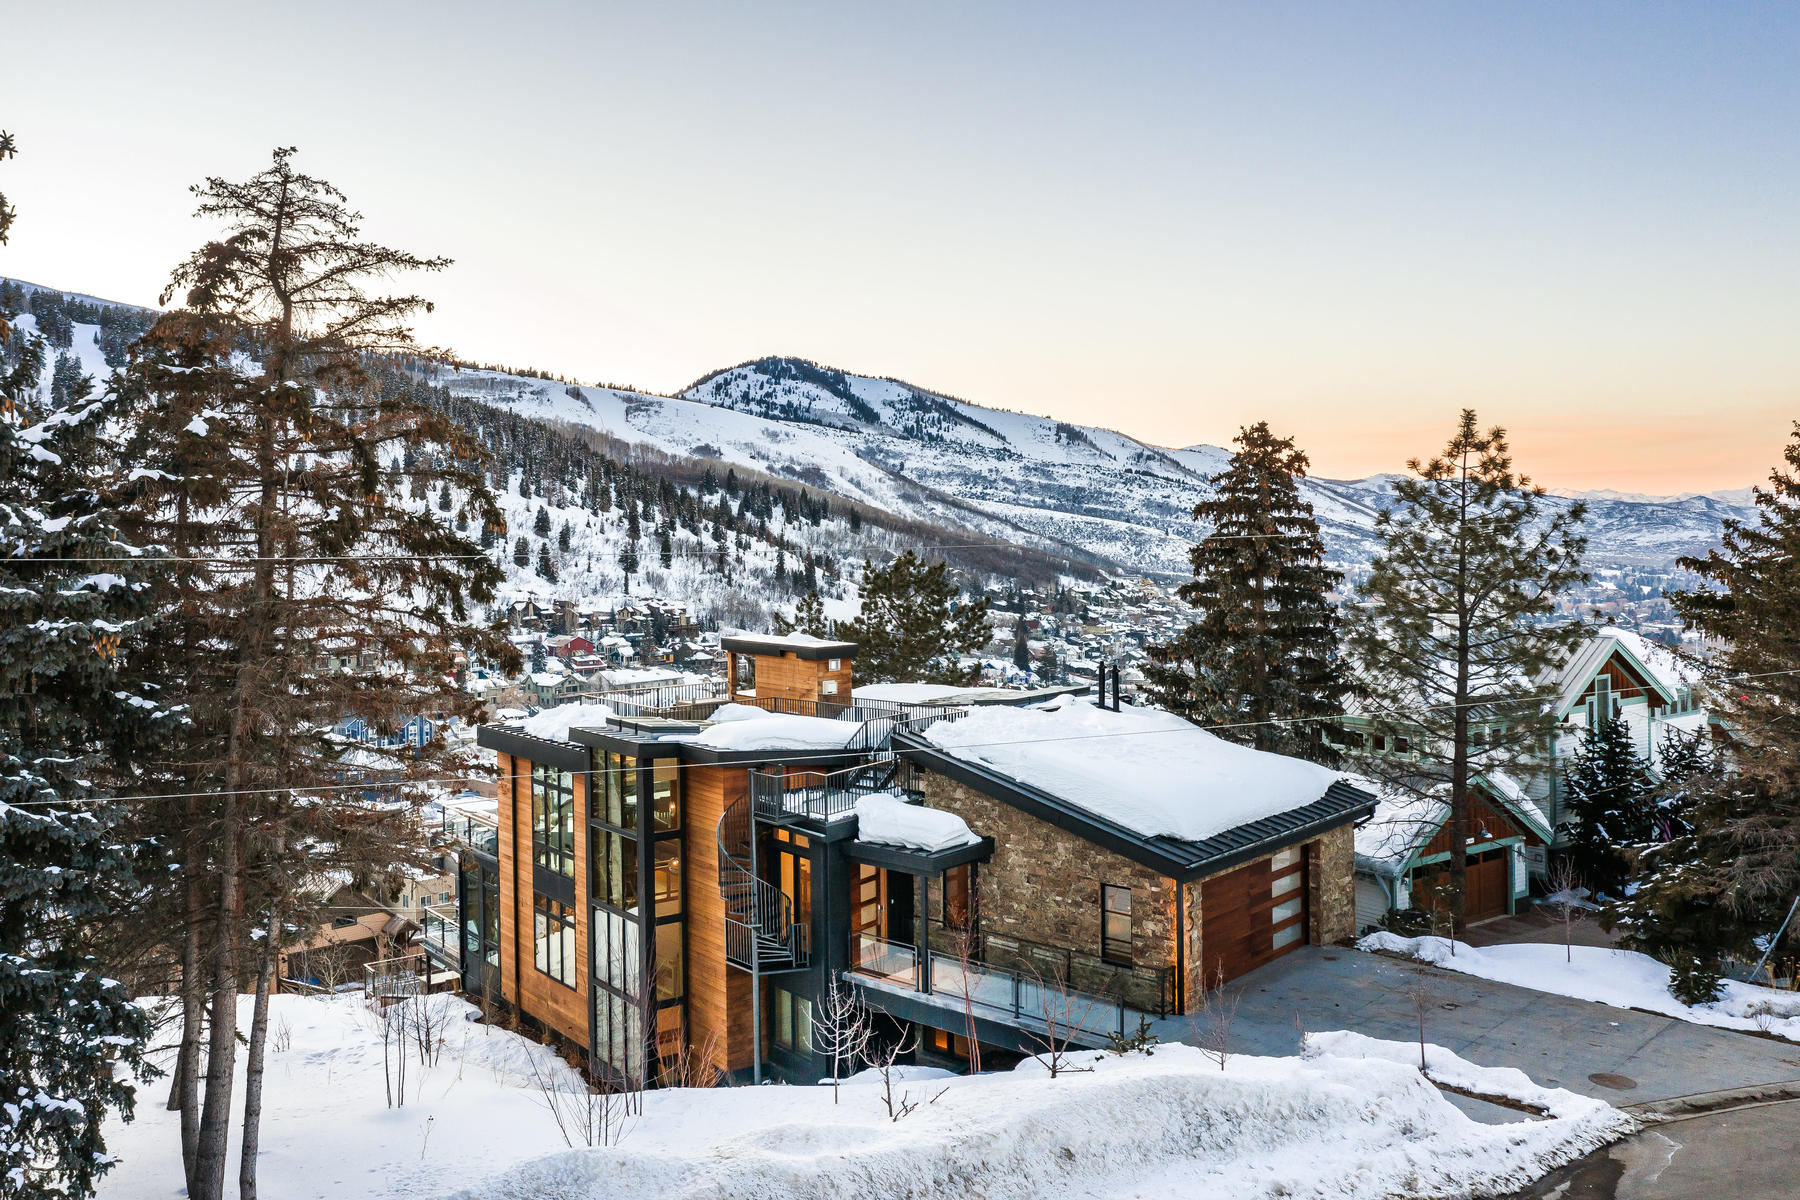 Single Family Homes for Sale at Architectural Wonder In Park City's Old Town 331 McHenry Ave Park City, Utah 84060 United States